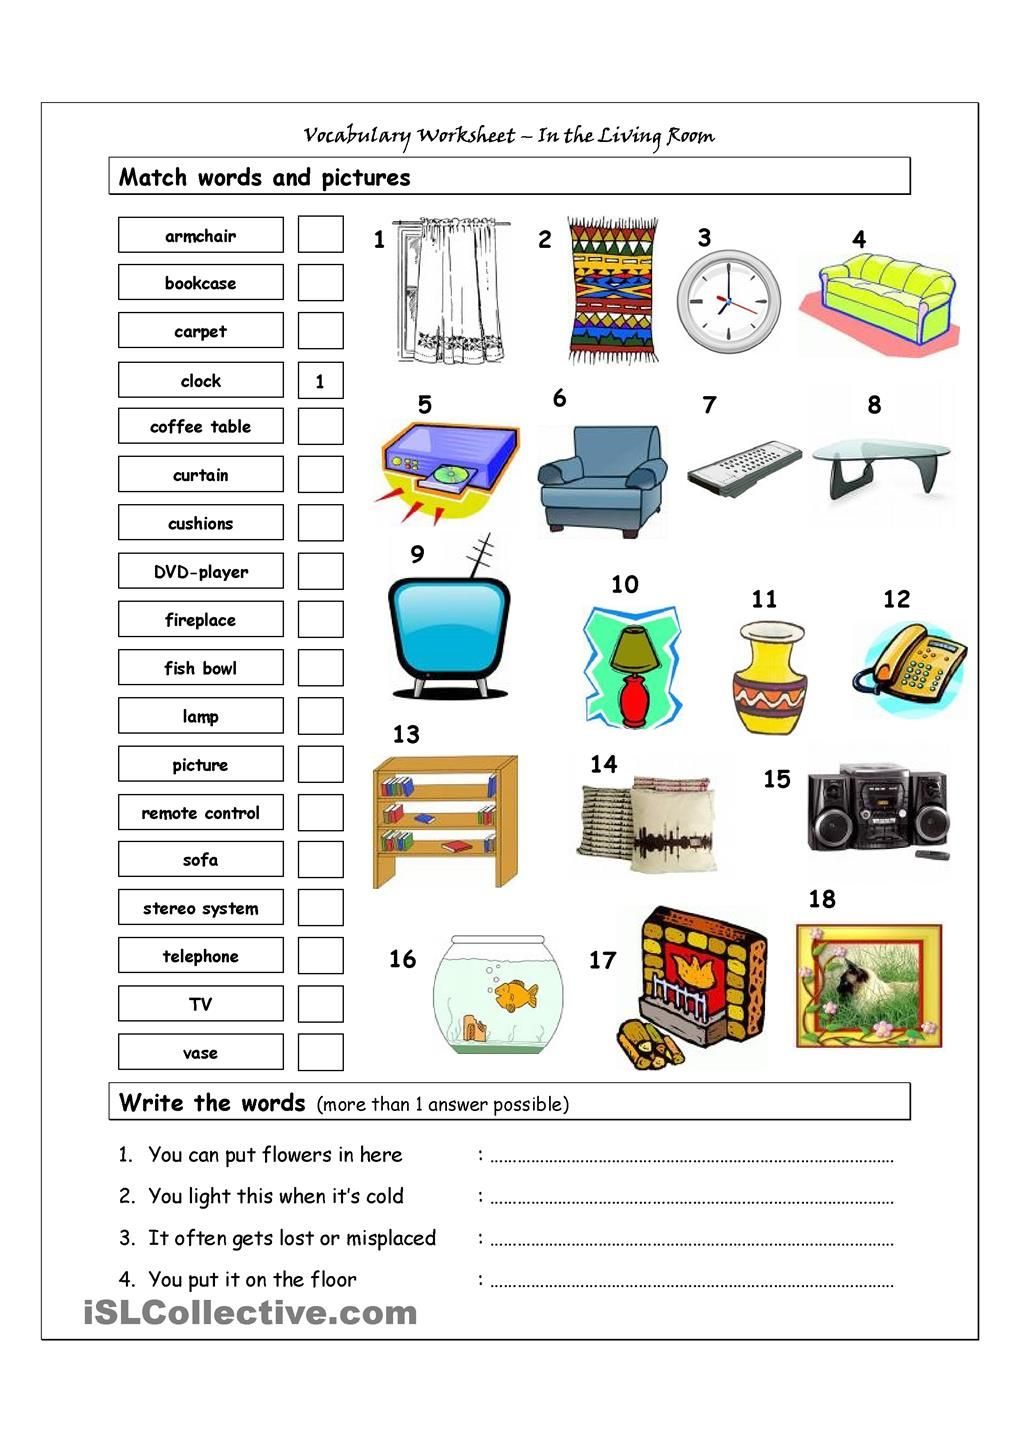 Bedroom furniture names in english - Vocabulary Matching Worksheet In The Living Room